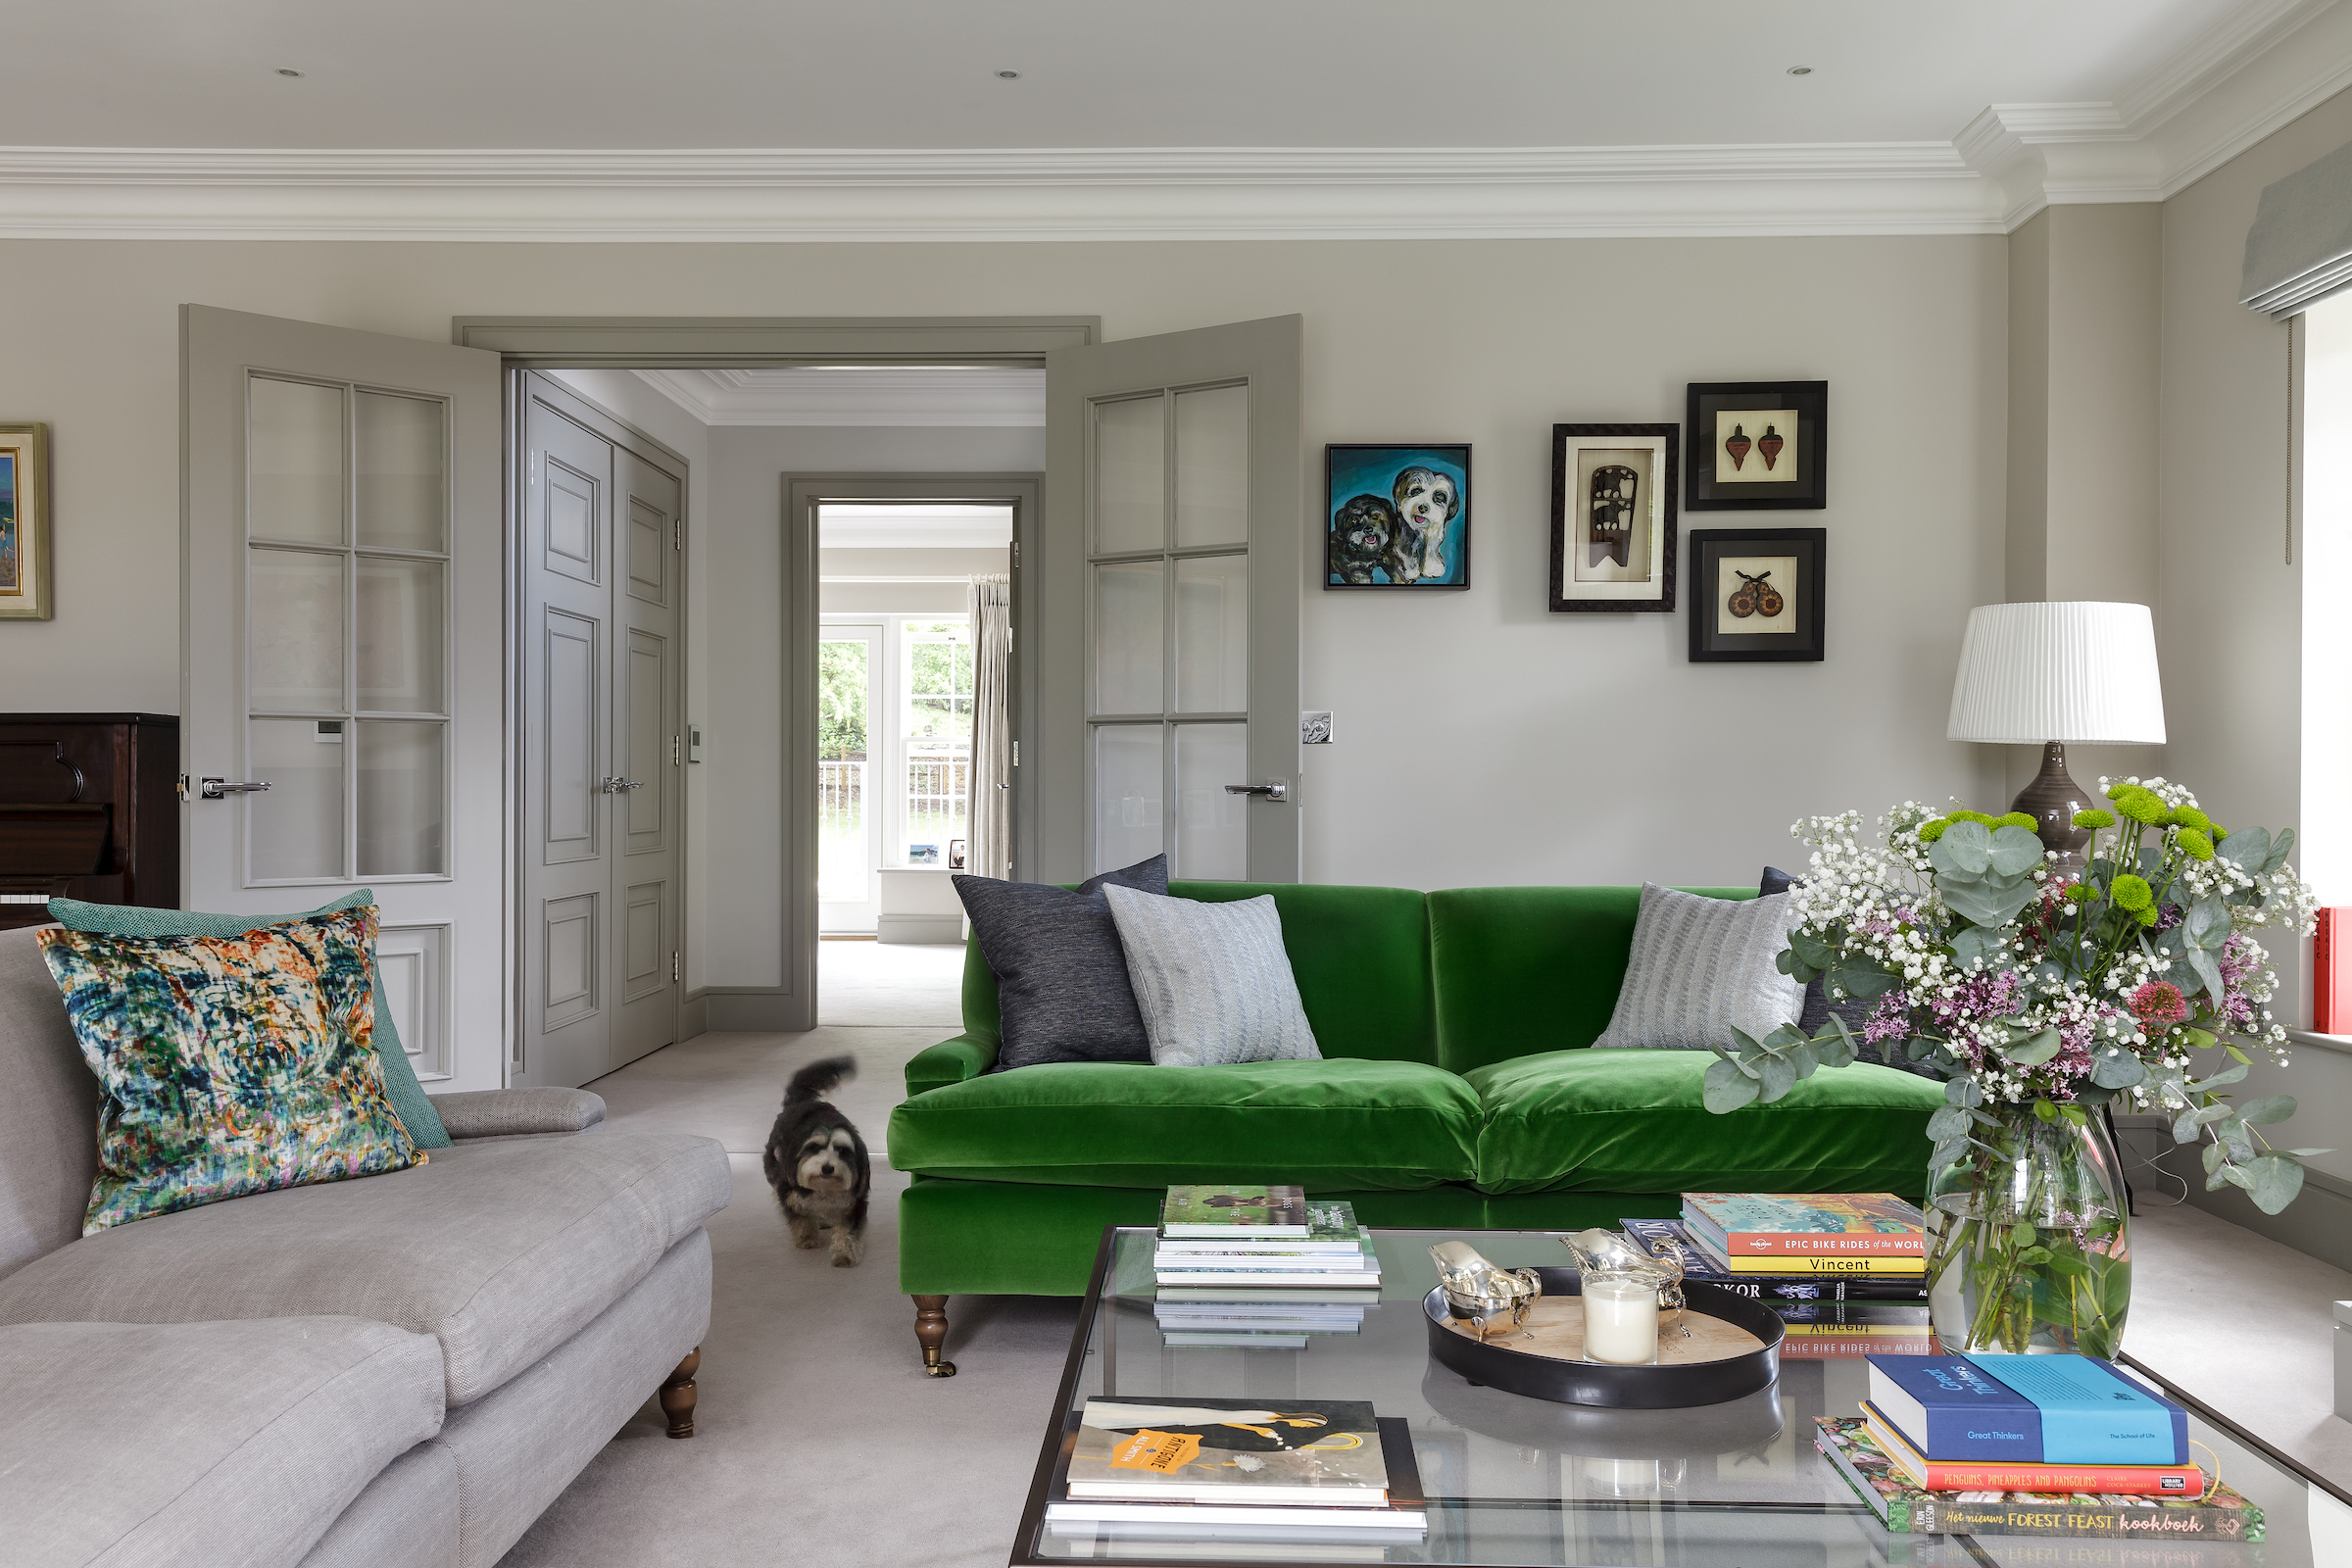 Emerald Green Velvet sofa in Designers Guild Fabric